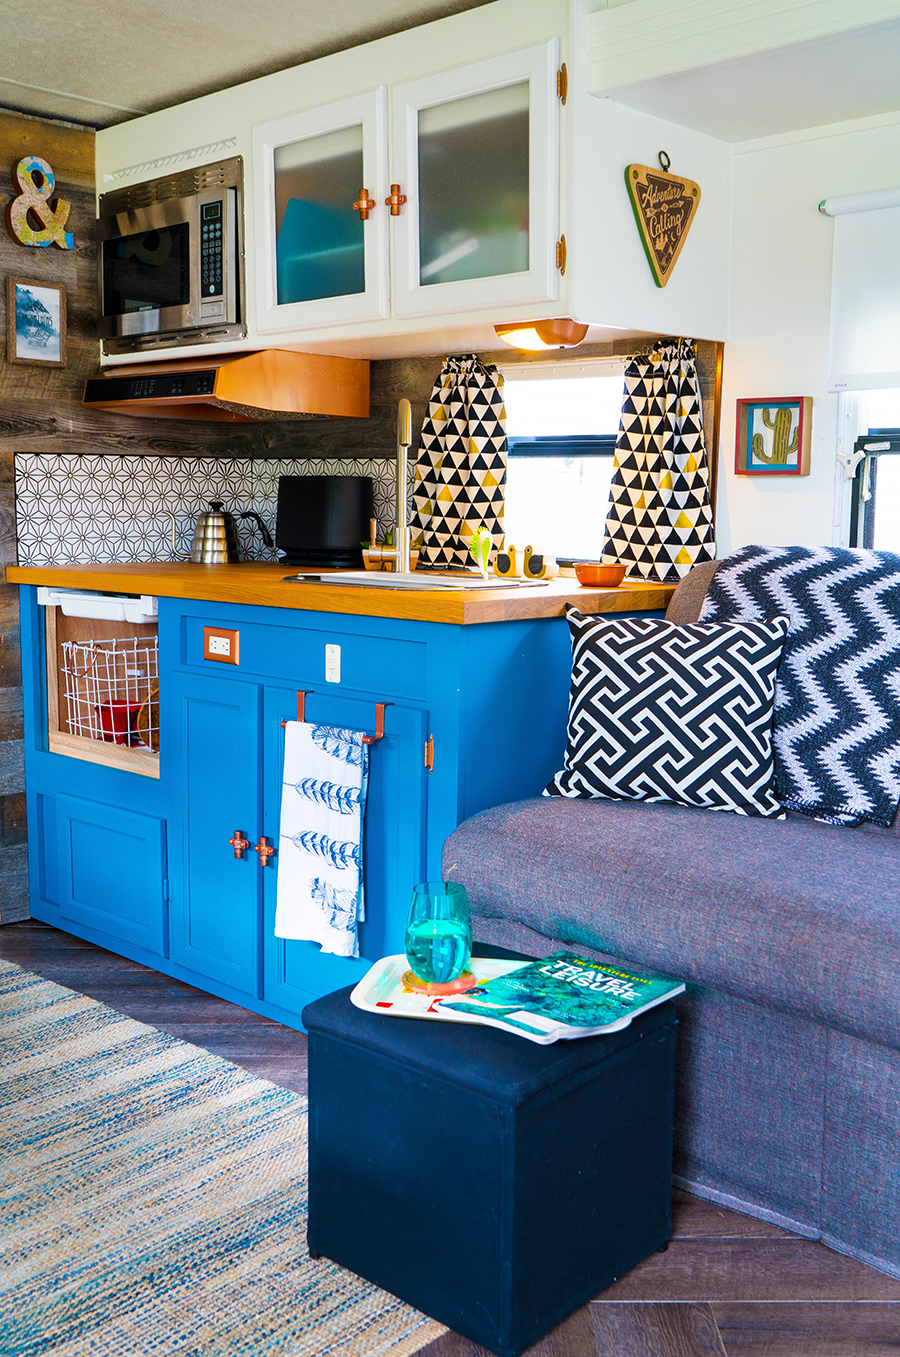 camper kitchen with blue cabinets